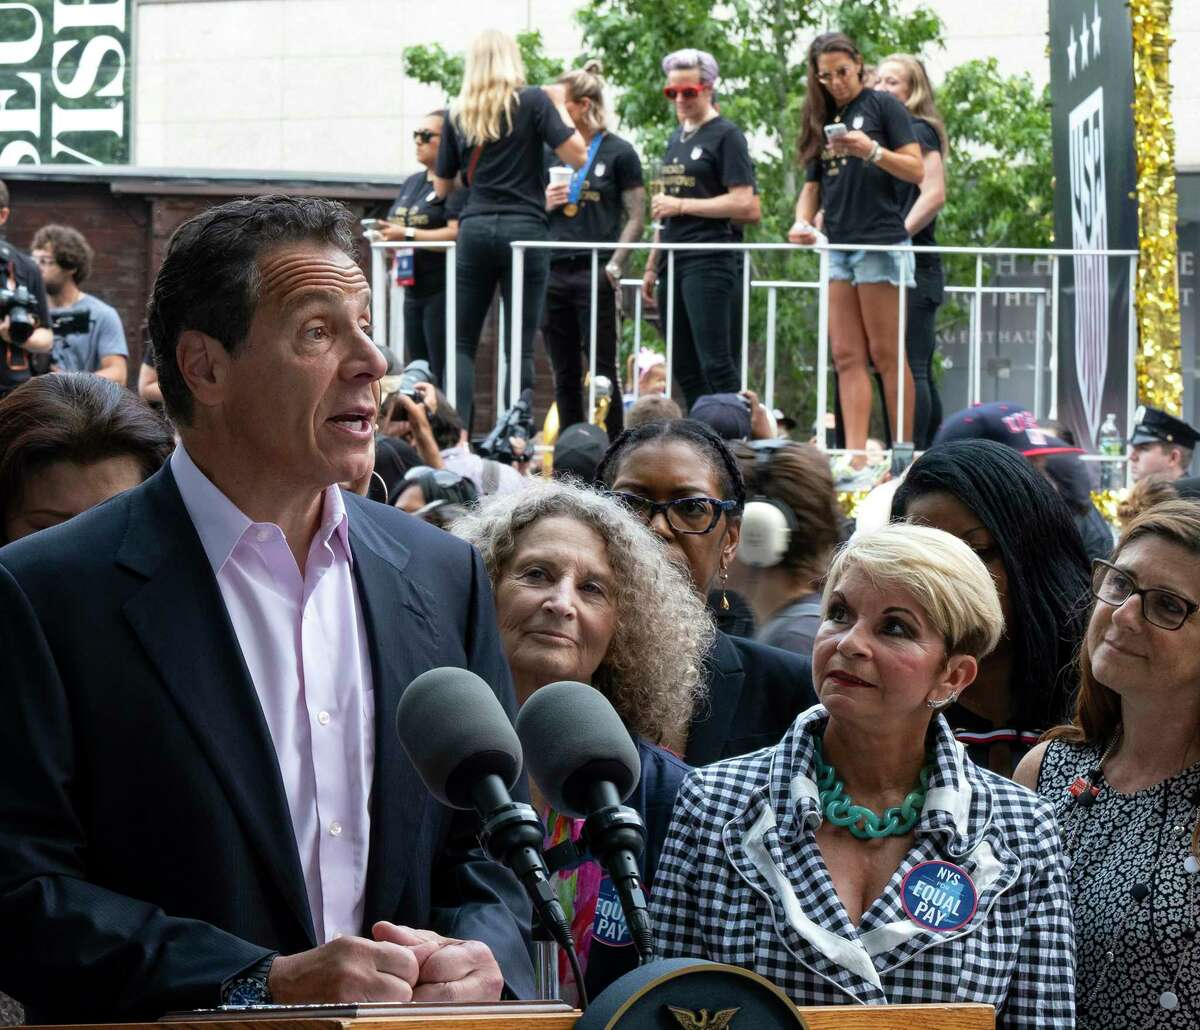 With members of the U.S. women's soccer team in the background before the start of a ticker tape parade in their honor, Gov. Andrew Cuomo speaks before signing a bill into law Wednesday, July 10, 2019, in New York. The bill will expand a law banning gender pay discrimination to make it illegal for employers to pay workers differently based on their age, race, religion or other characteristics, and making it easier for workers to prove pay discrimination in court.